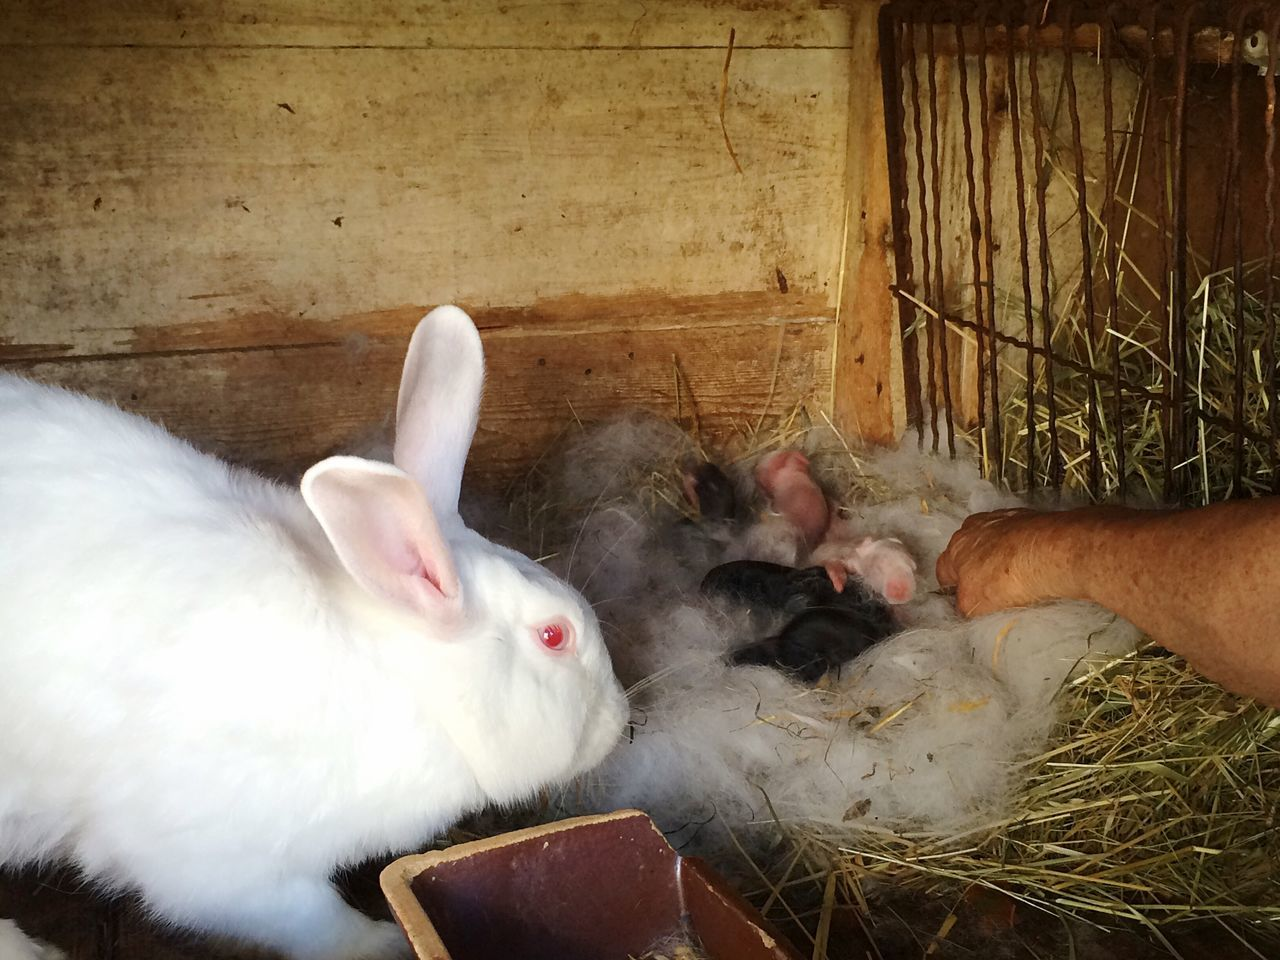 Little Rabbits Rabbit Newly Born Nest Animals Animal White Black Black And White At Grandmas Village Life Country Life